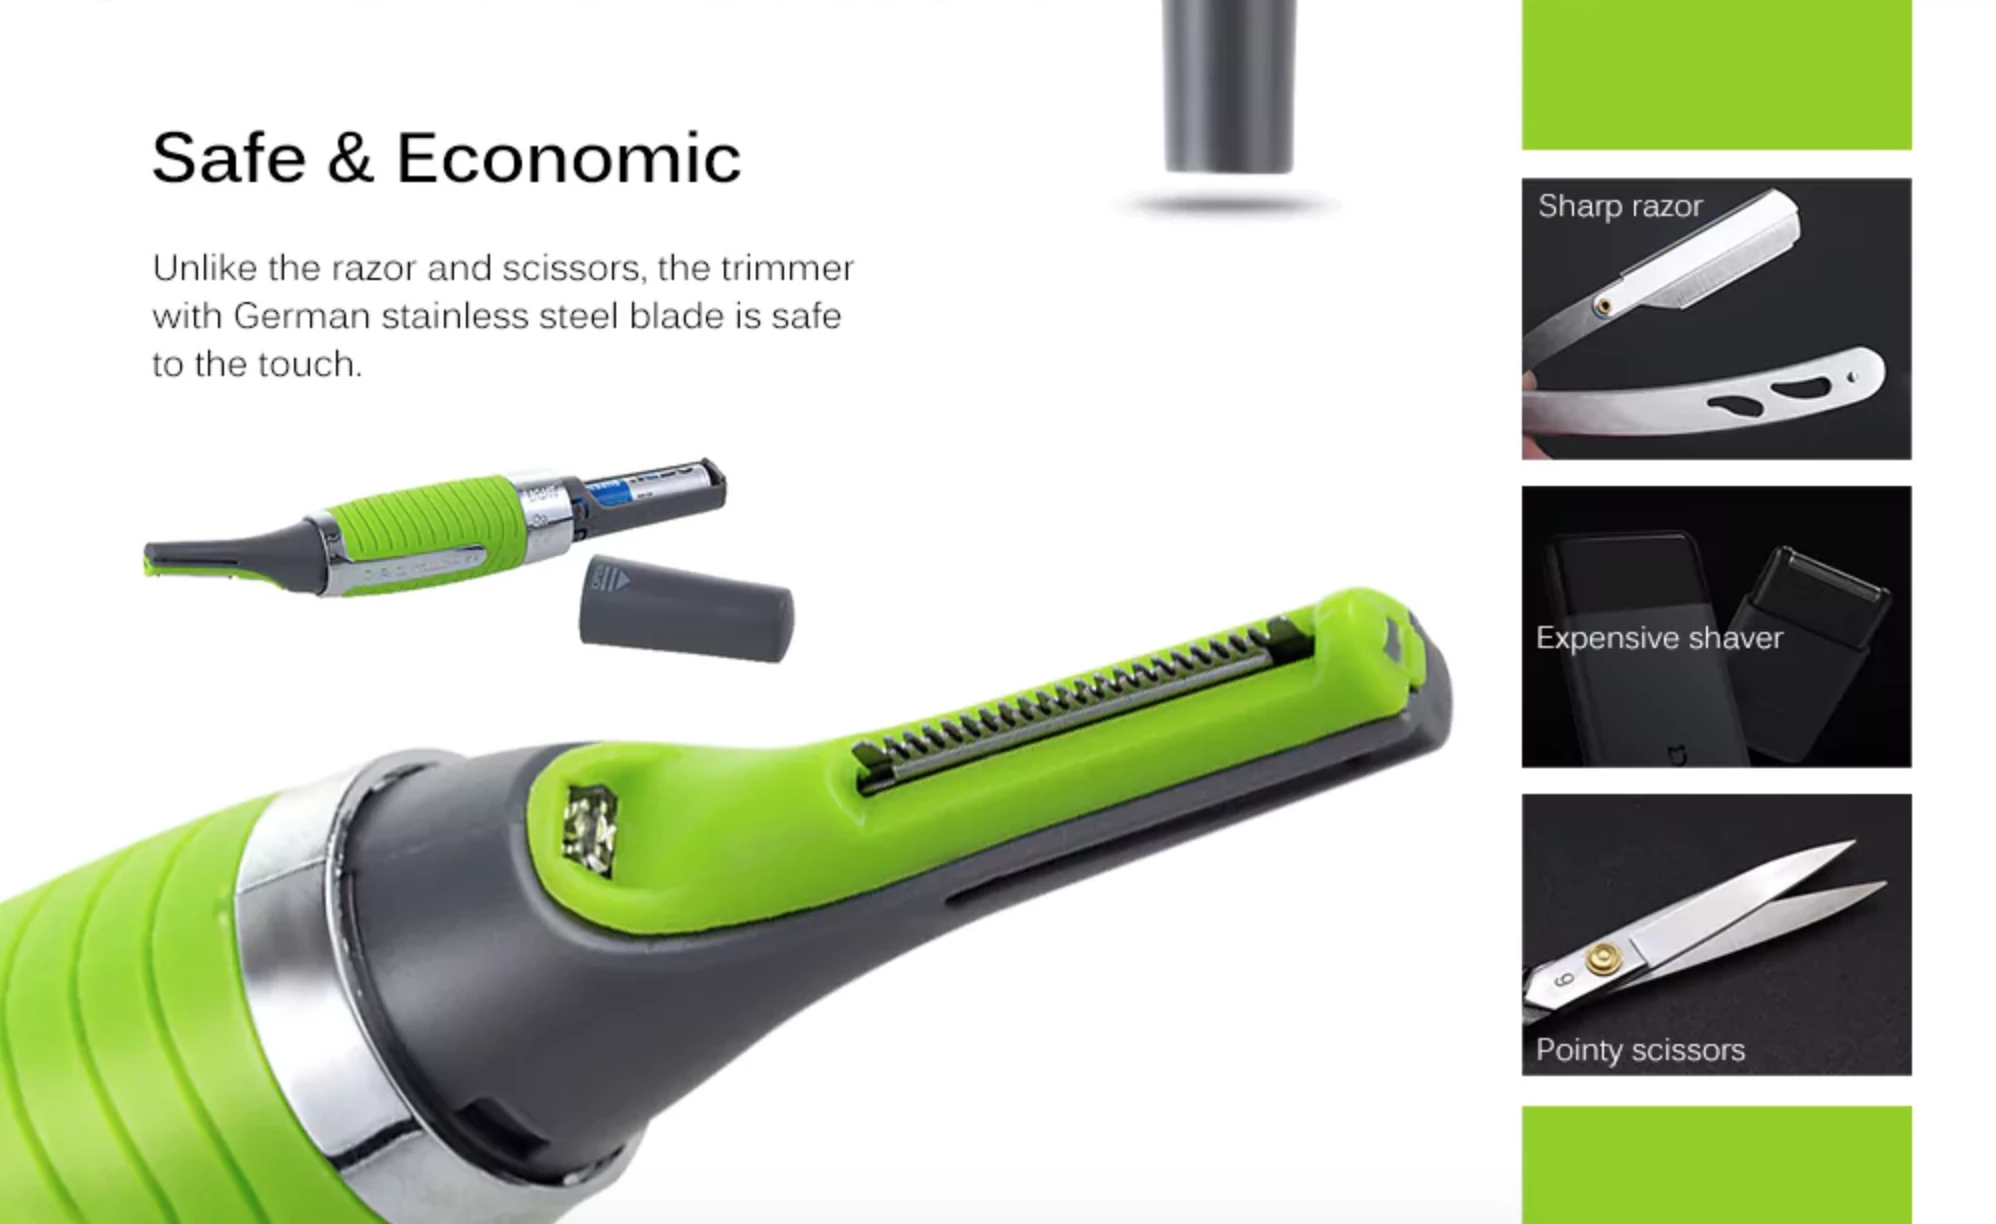 All In One Original Micro-Touch Trimmer